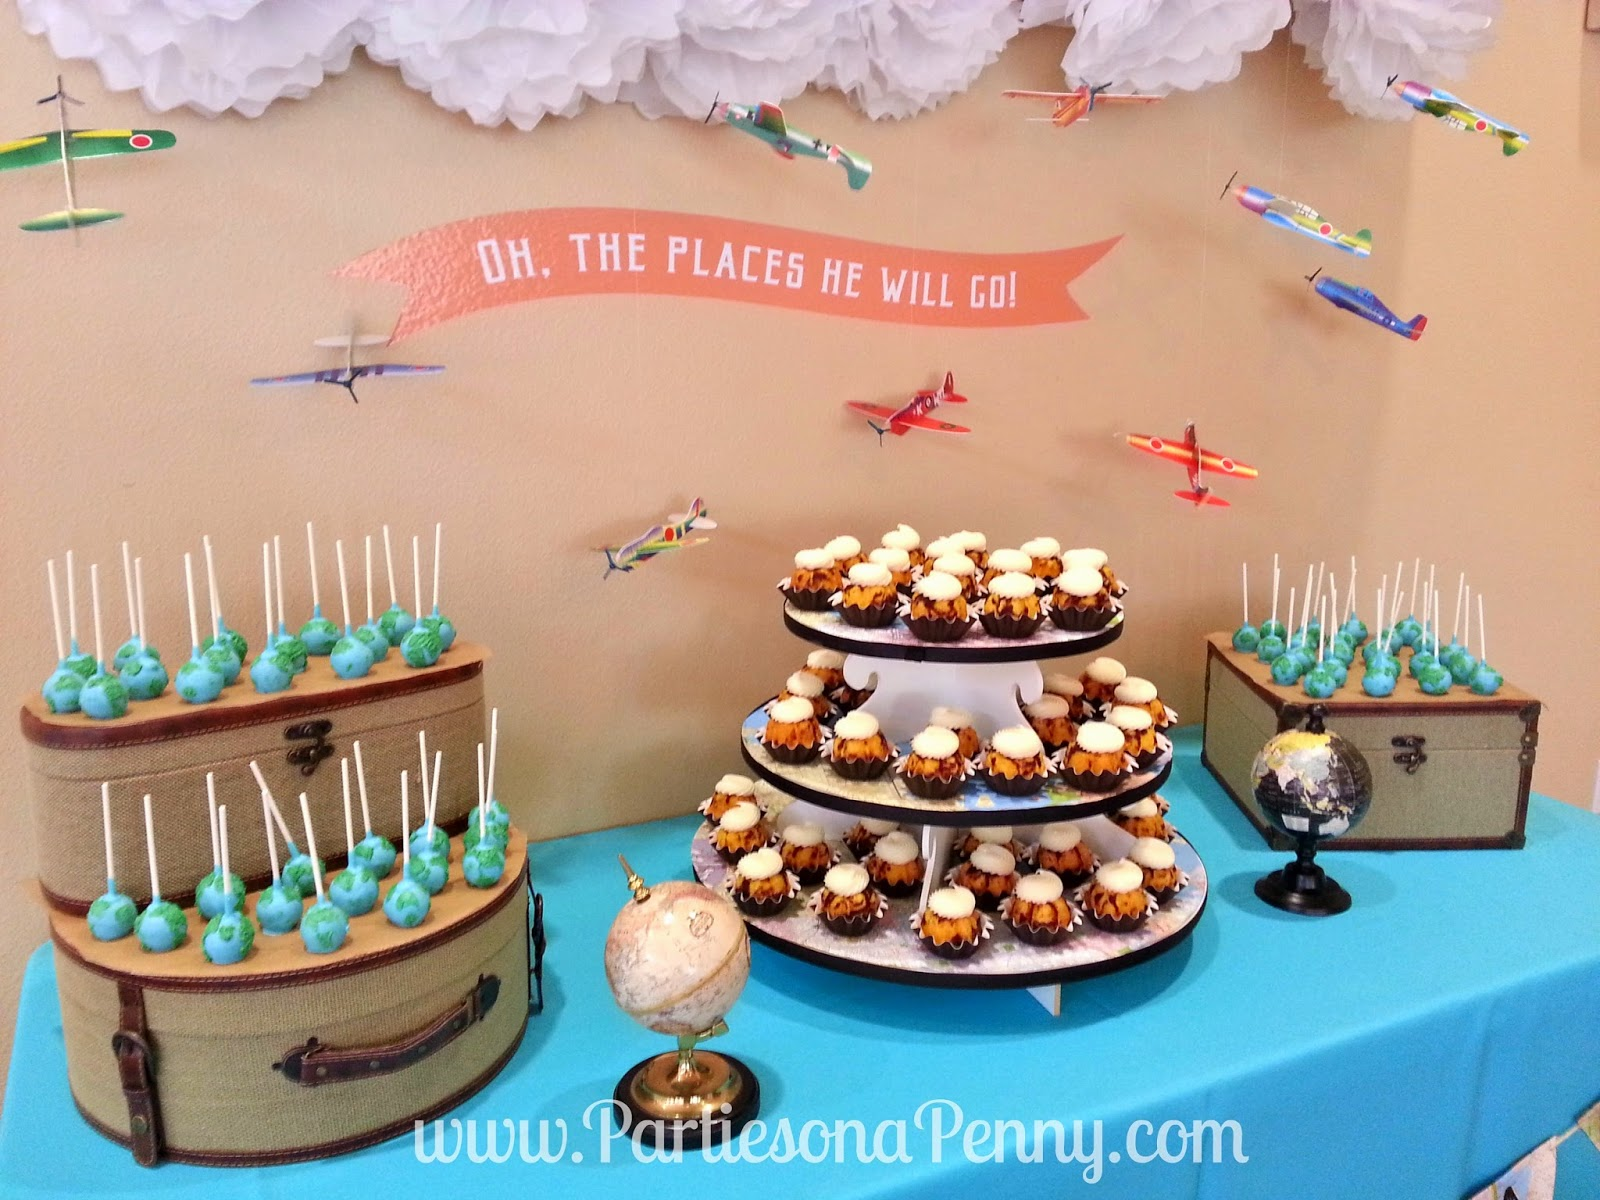 parties on a penny travel themed baby shower